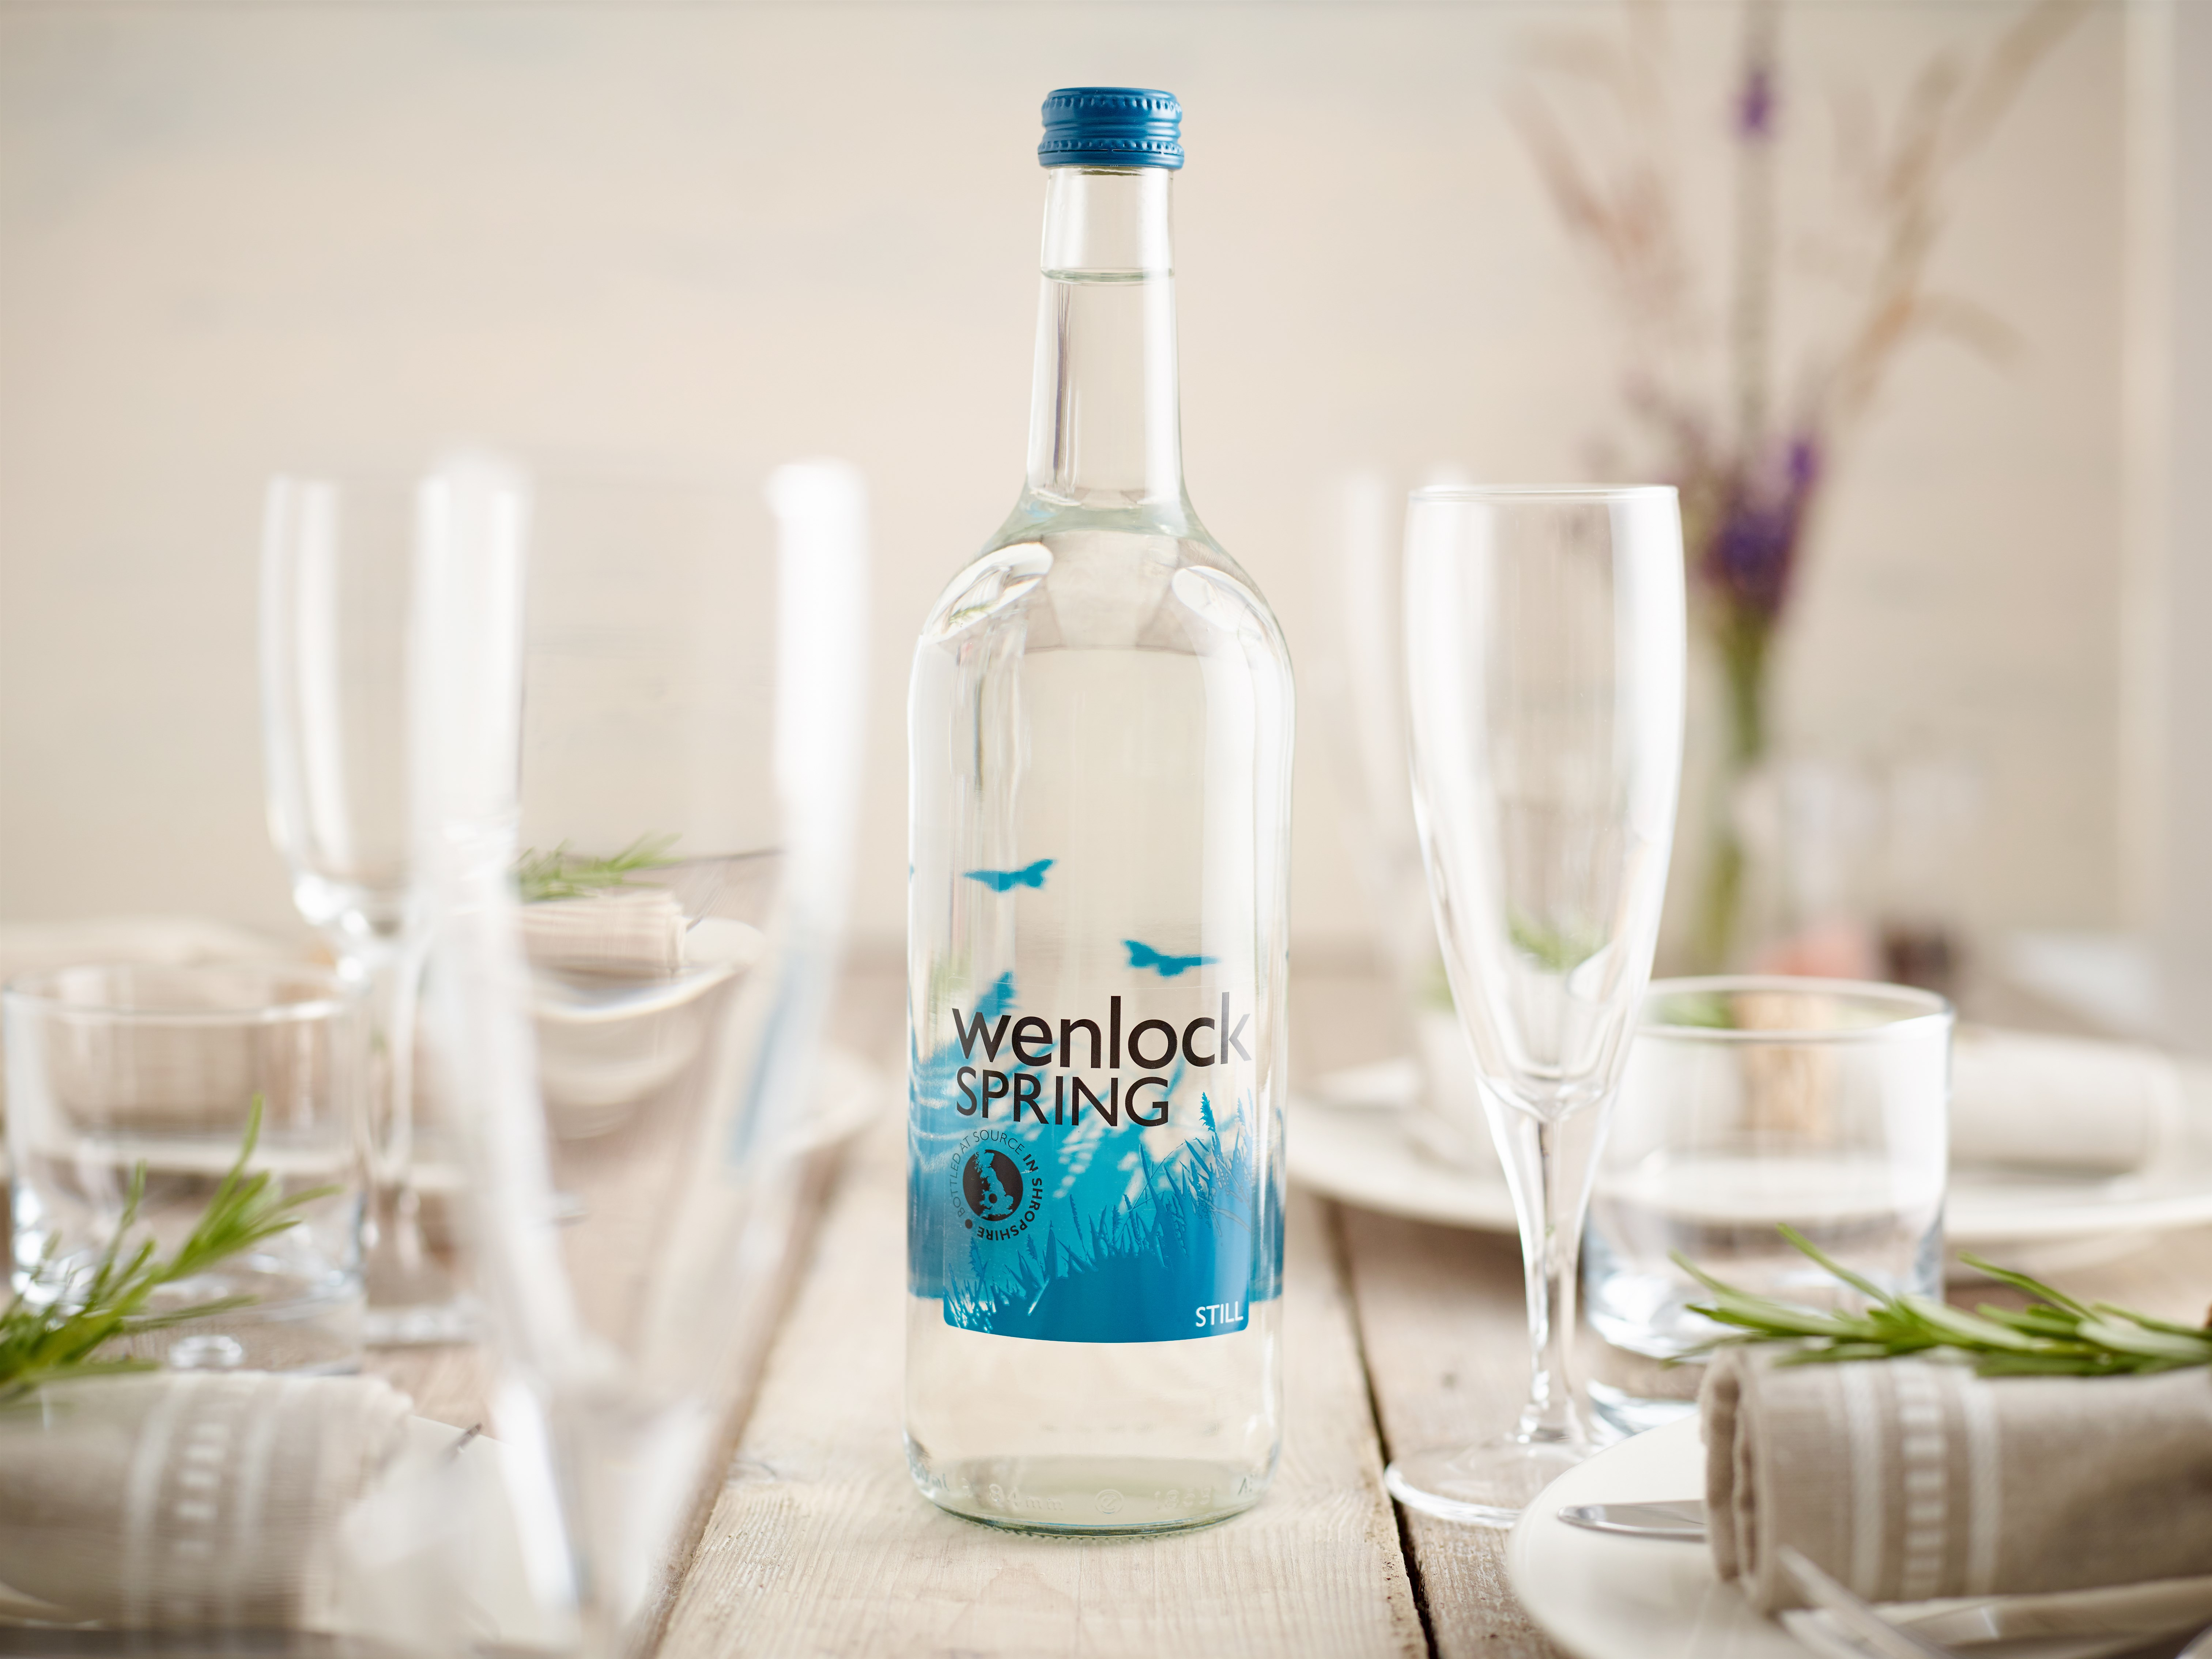 Wenlock Spring - British spring water with provenance, style and sustainability